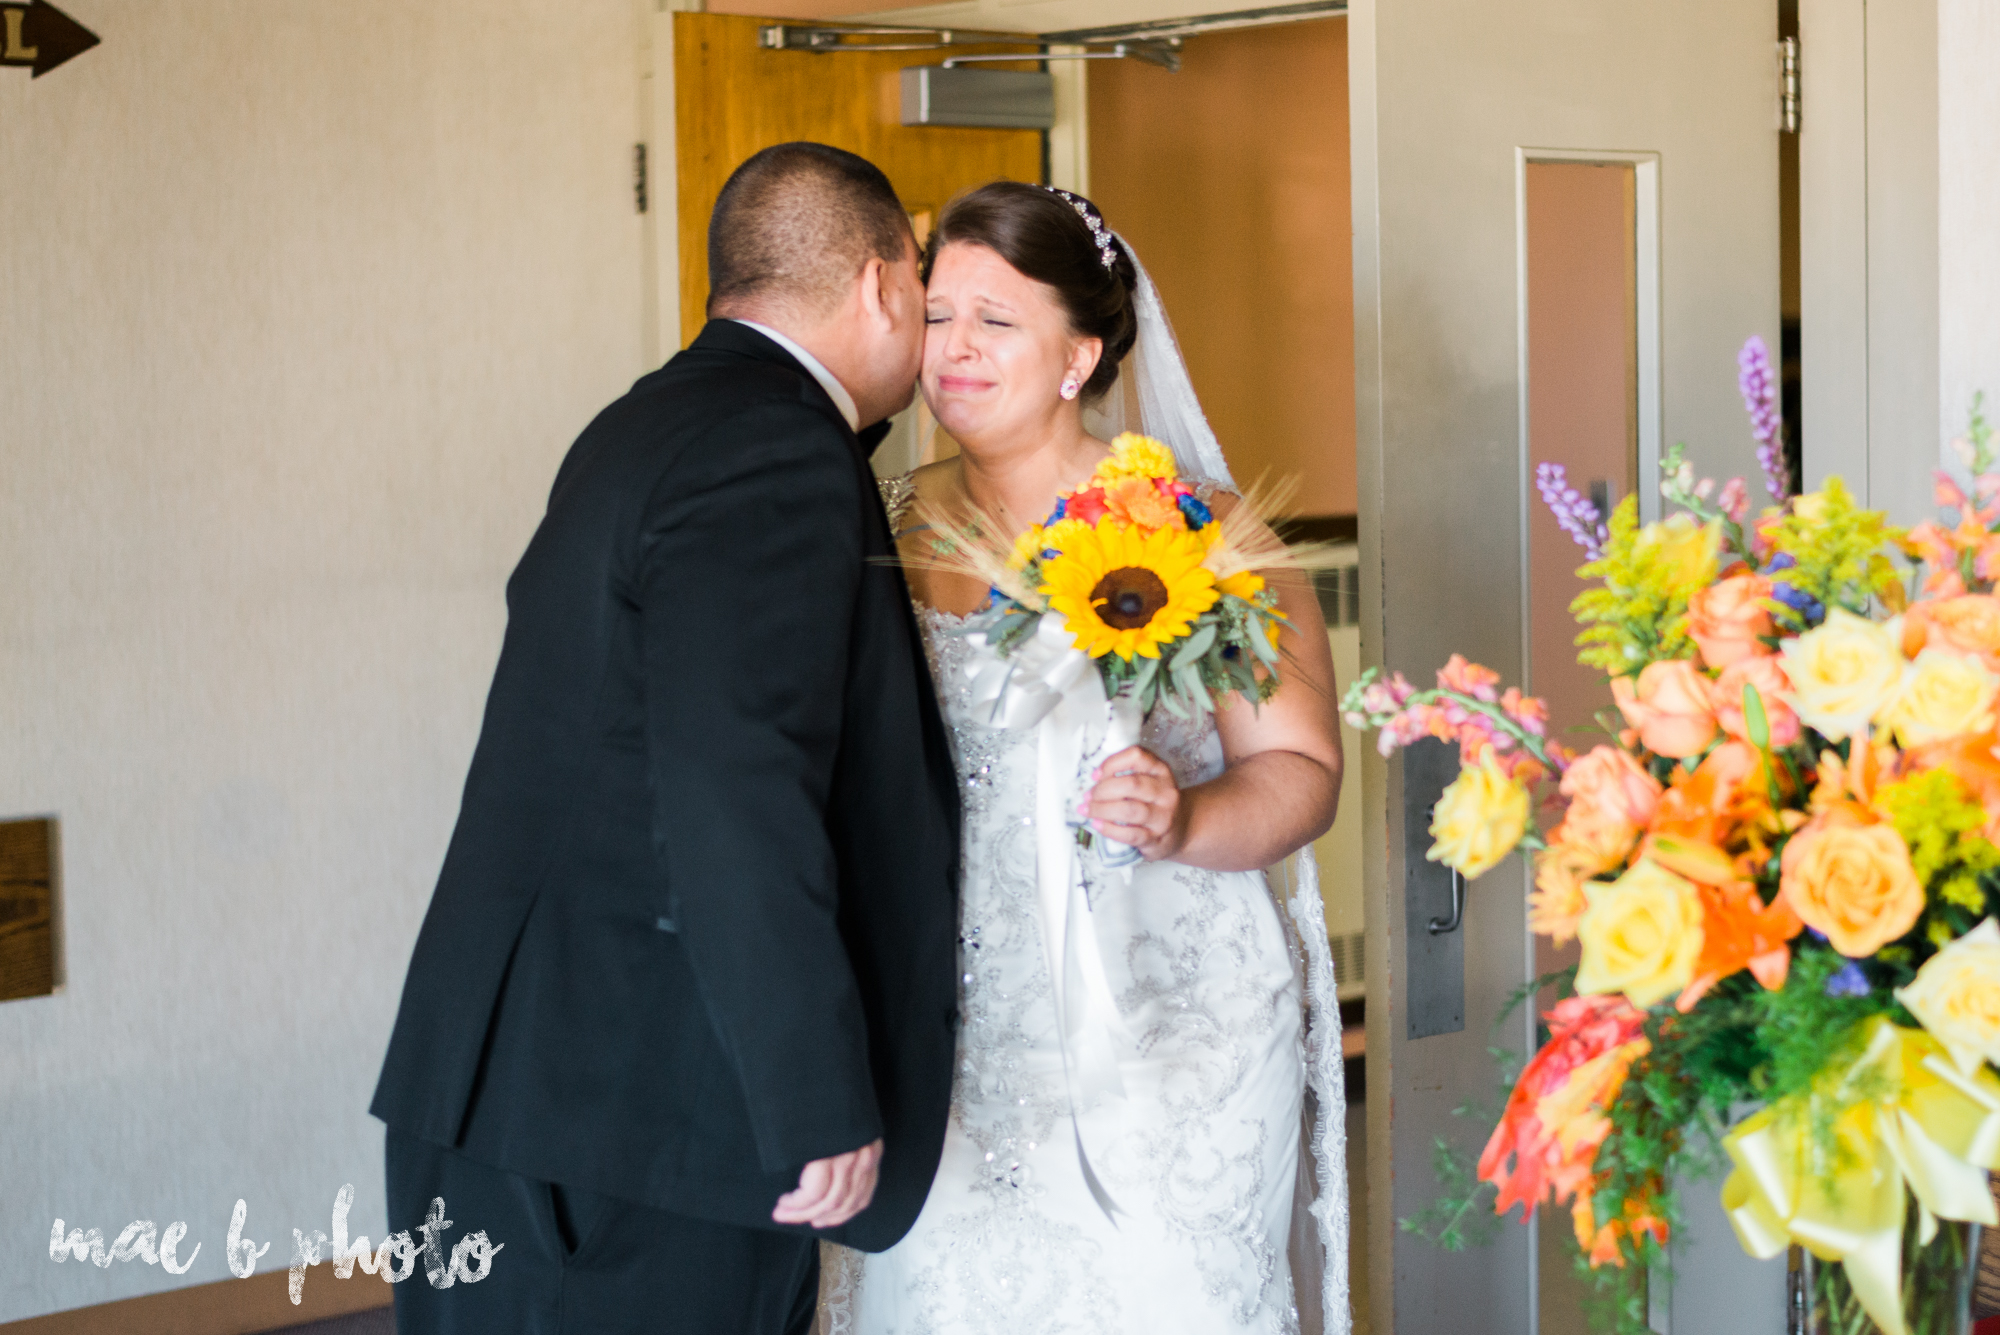 kaylynn & matt's fall zoo wedding at the cleveland metroparks zoo in cleveland ohio photographed by mae b photo-4.jpg